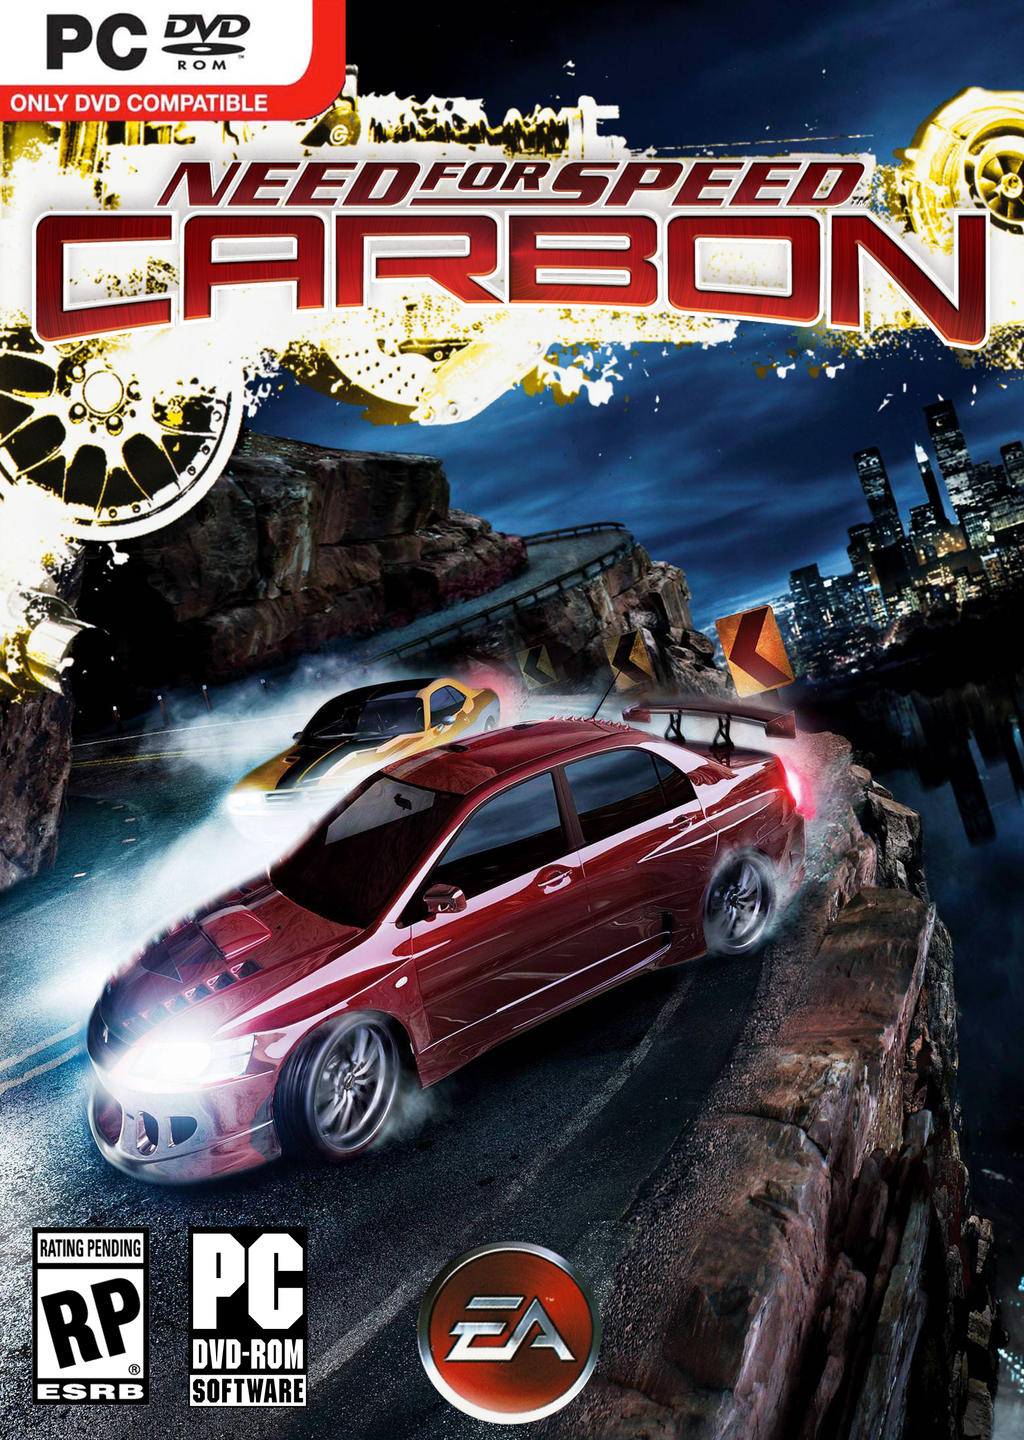 Need for Speed Carbon High Resolution PC Cover by Mighoet on